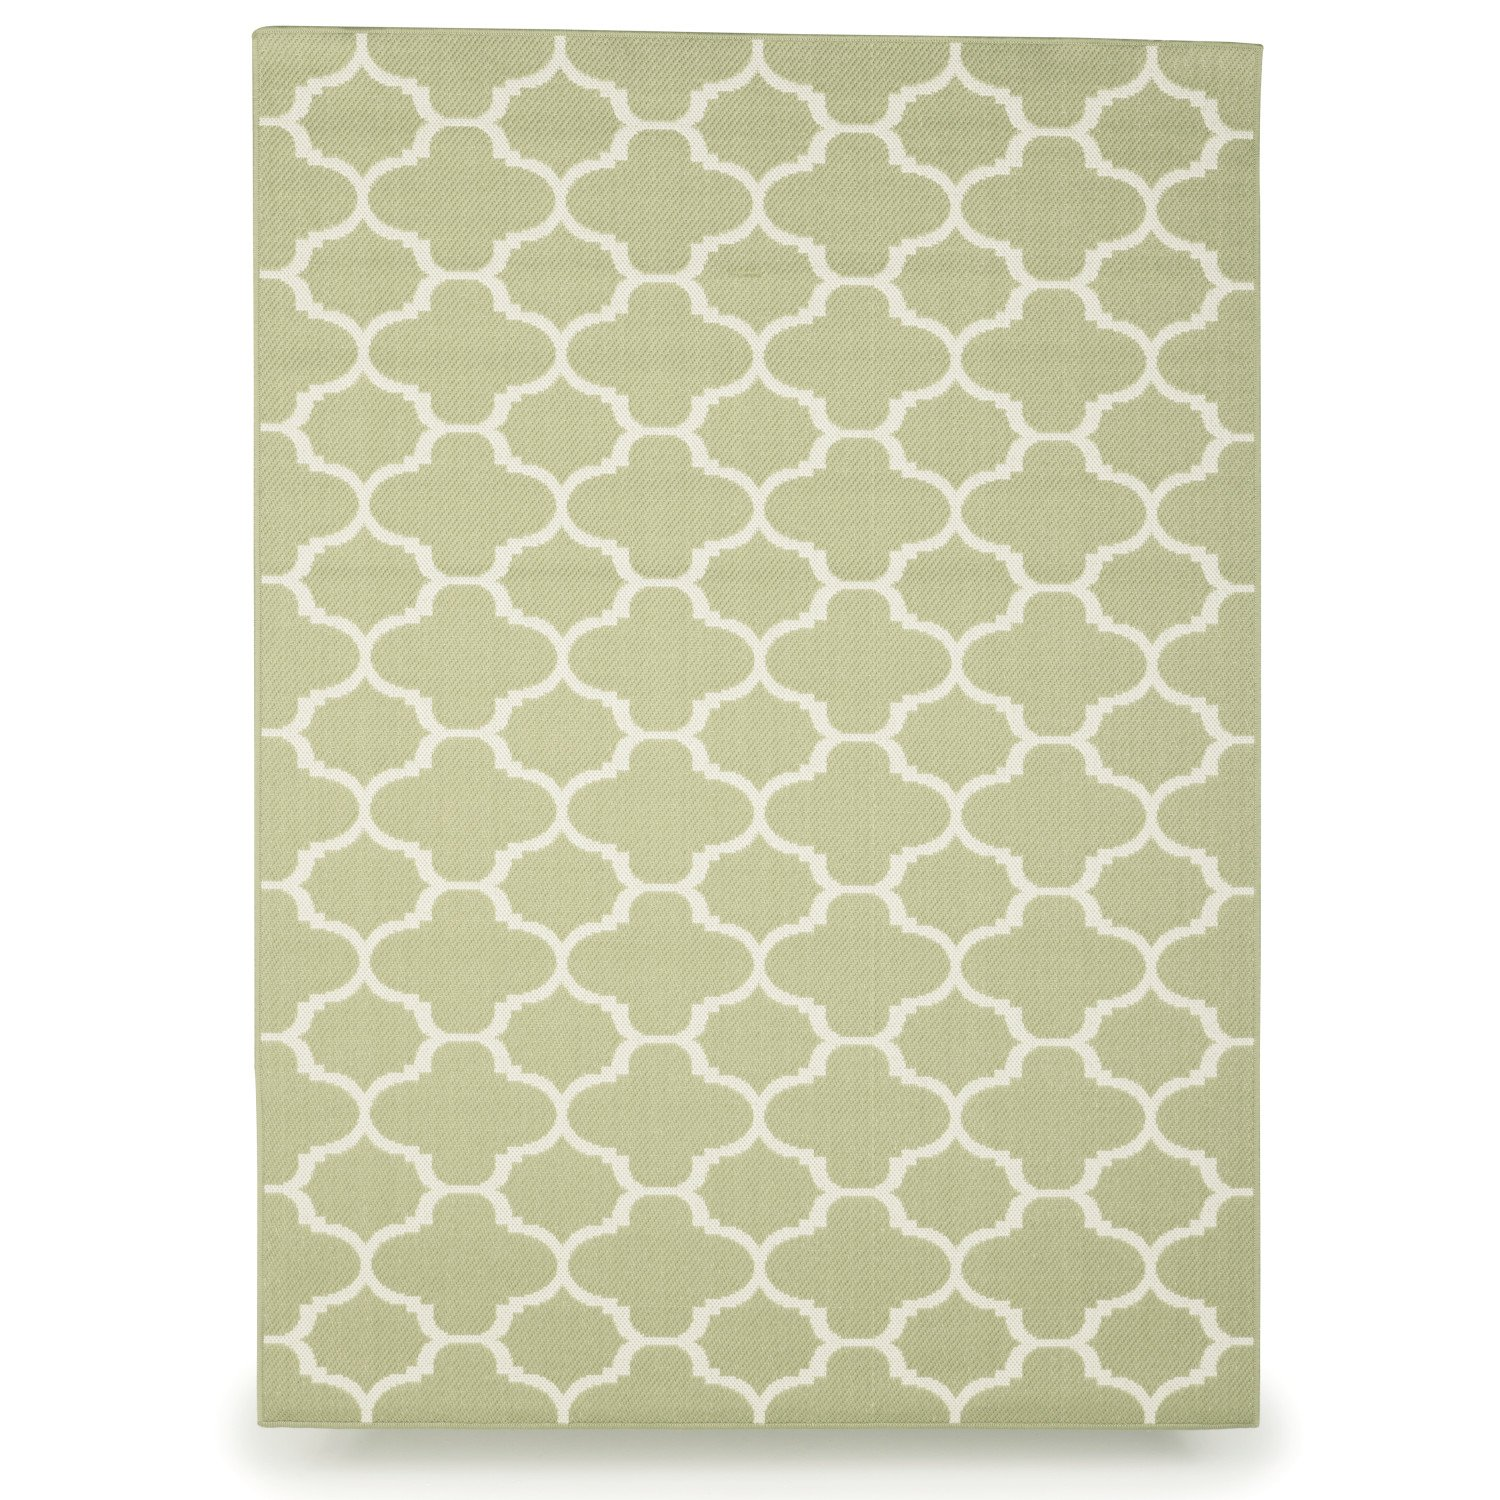 Budge Winchester Outdoor Patio Rug, RUG810SG3 (8' Long x 10' Wide, Sage Green) by Budge